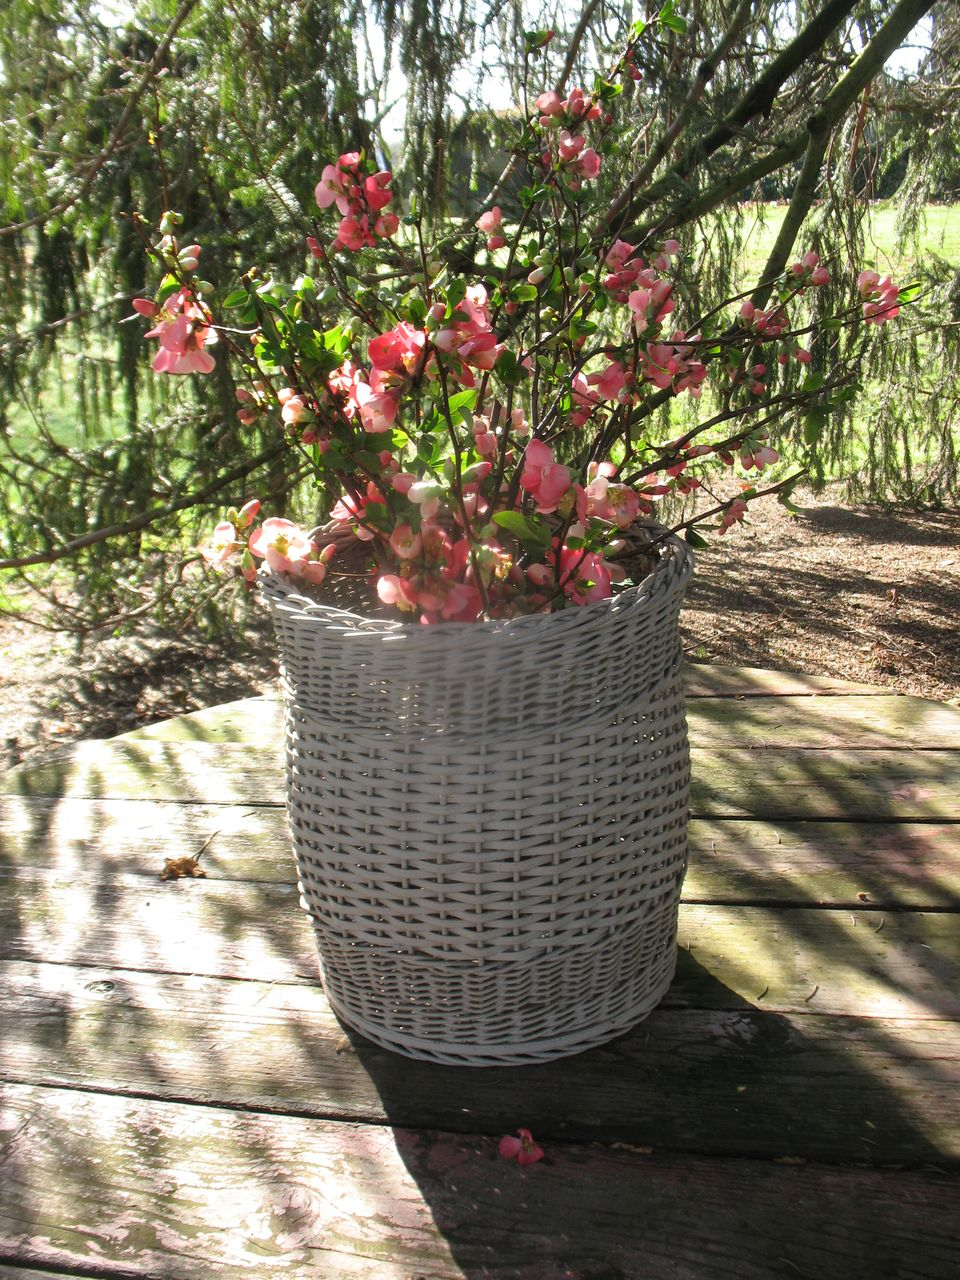 Wicker Basket with Weave Patterns and Wood Bottom Circa 1920's